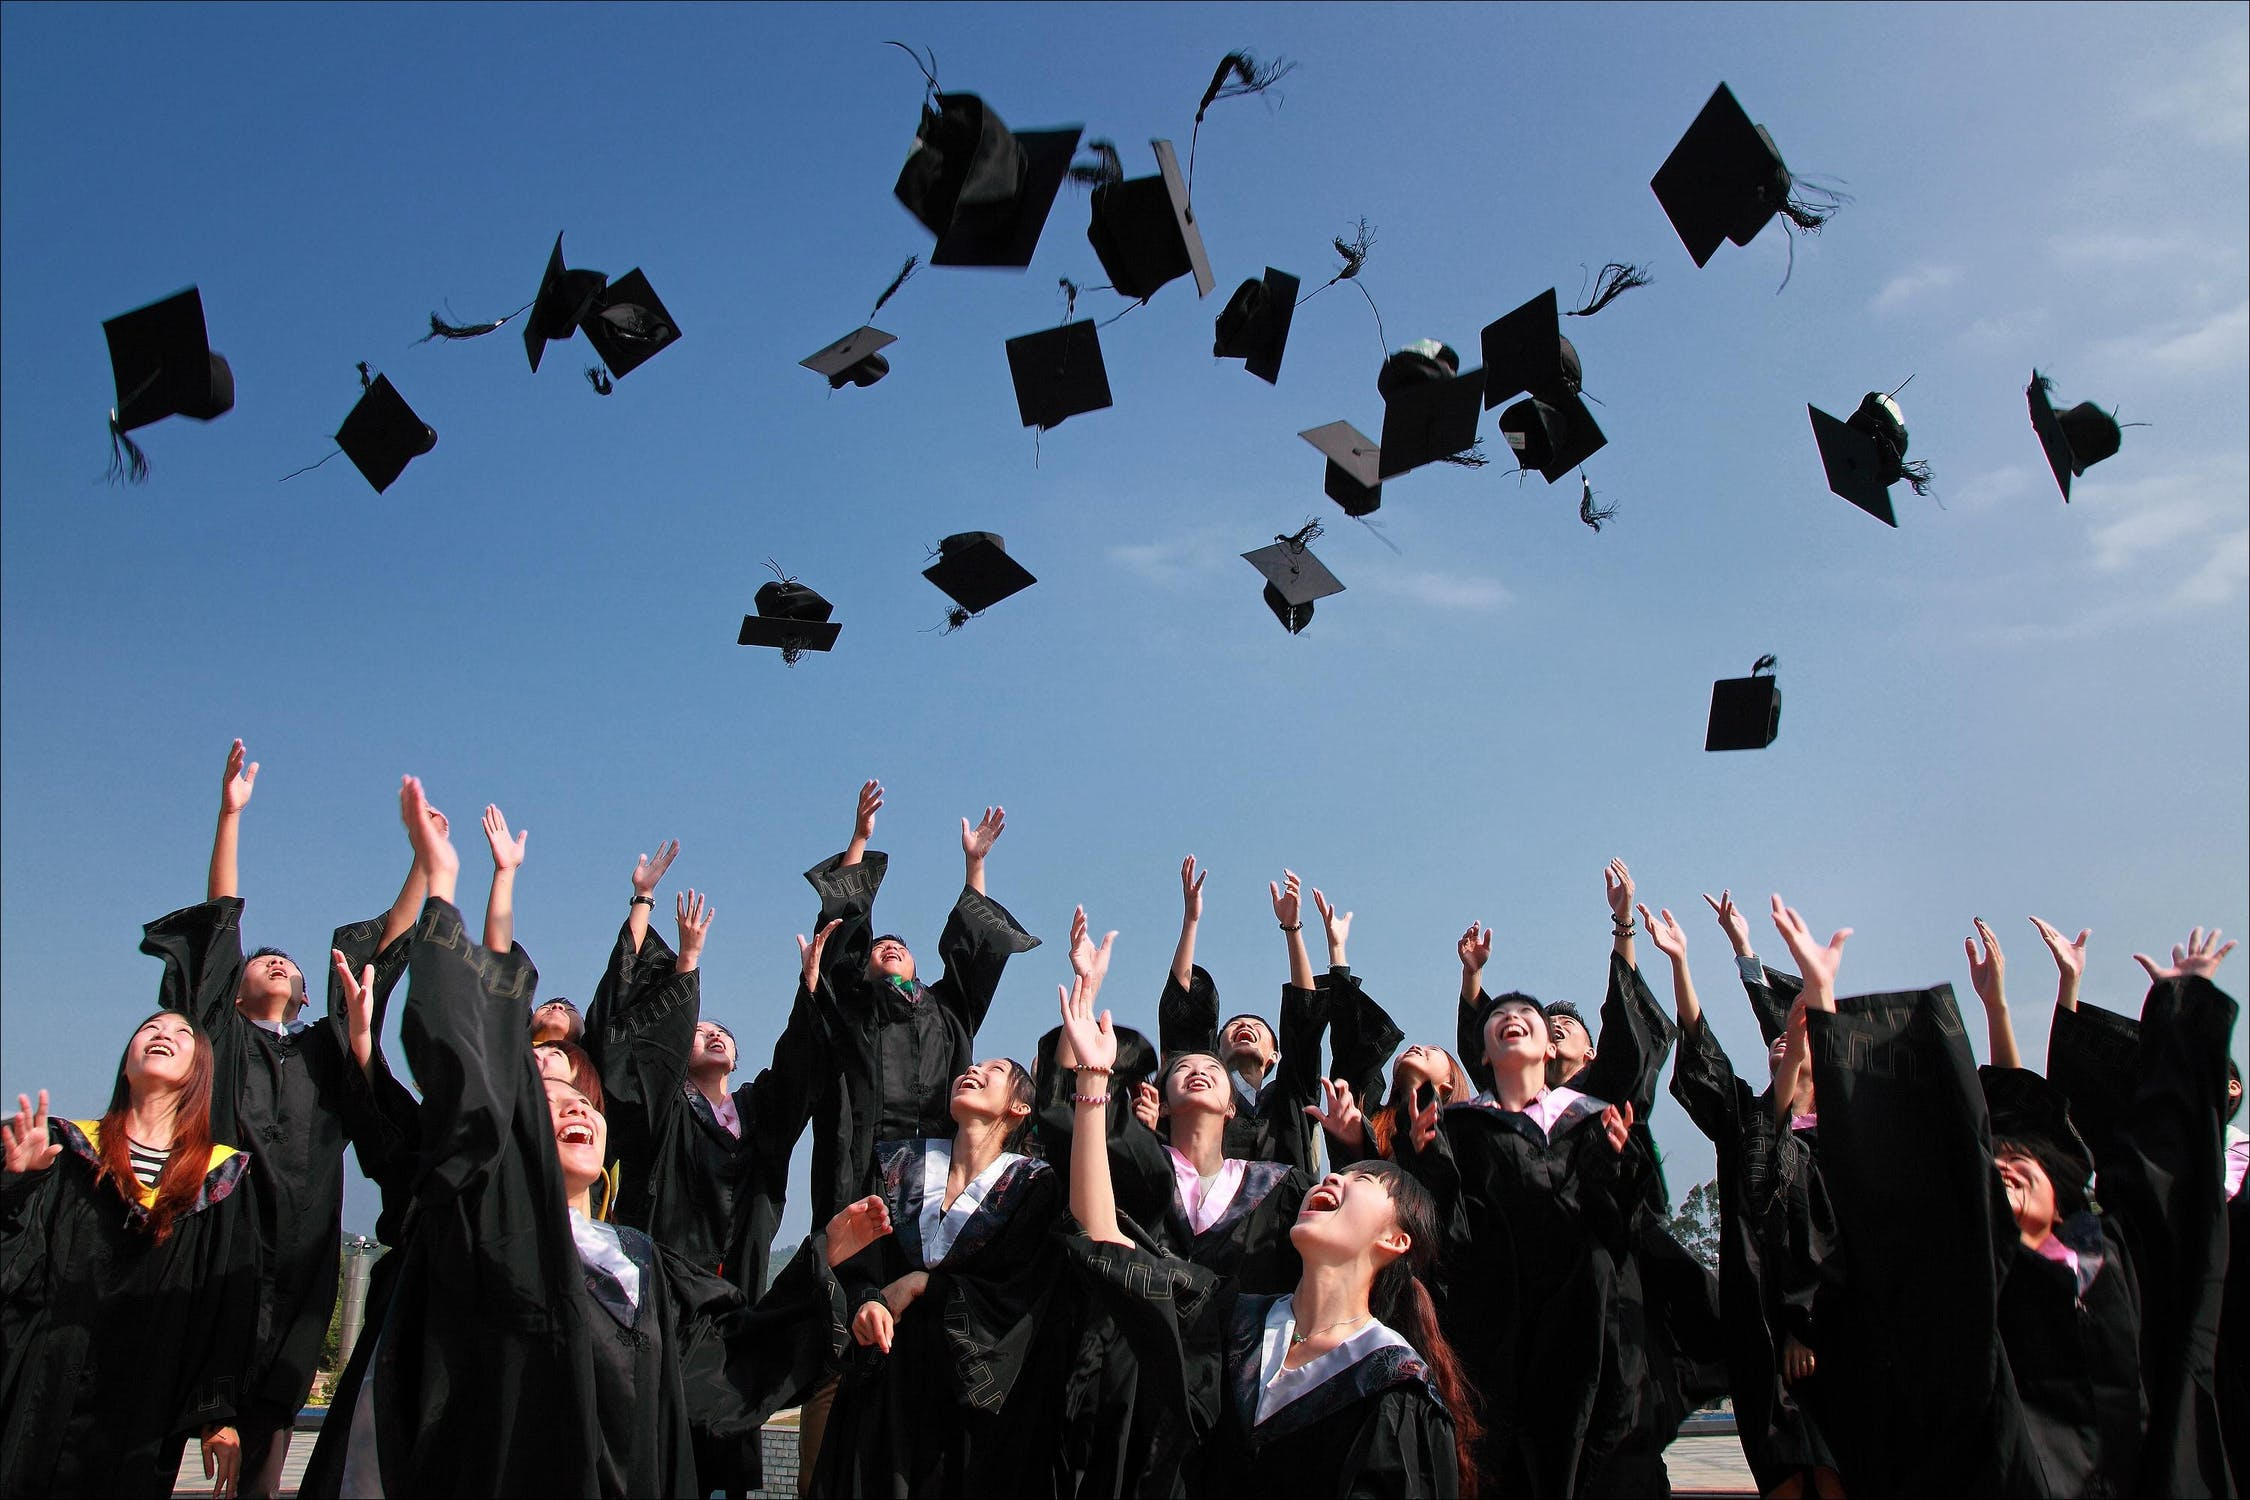 Picture of students throwing graduation caps in the air